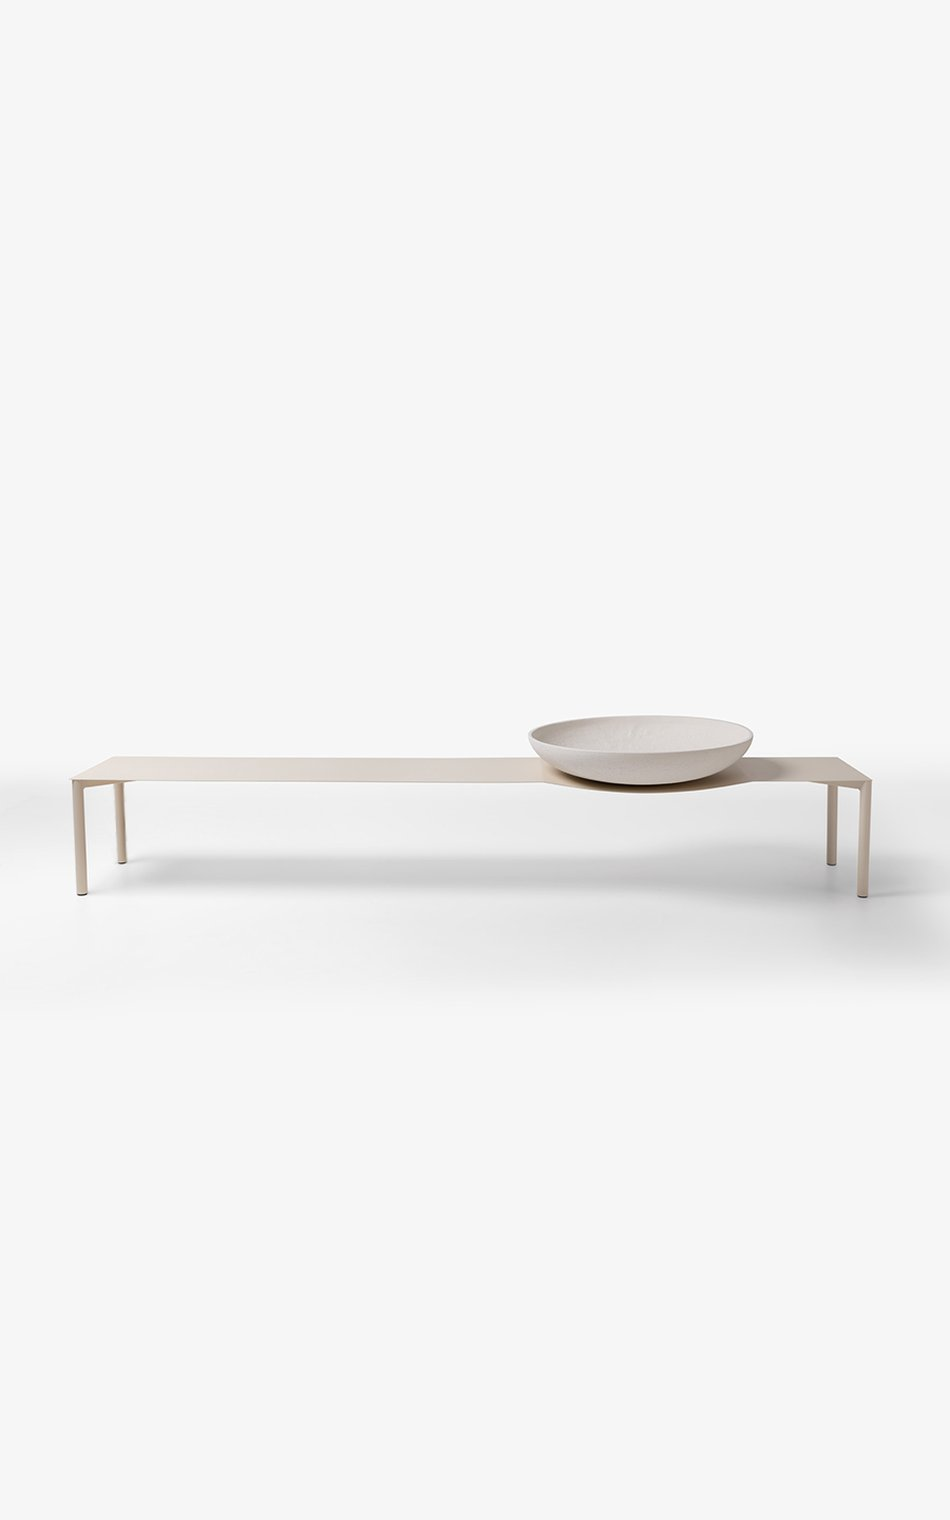 MESA BOWL | BOWL TABLE